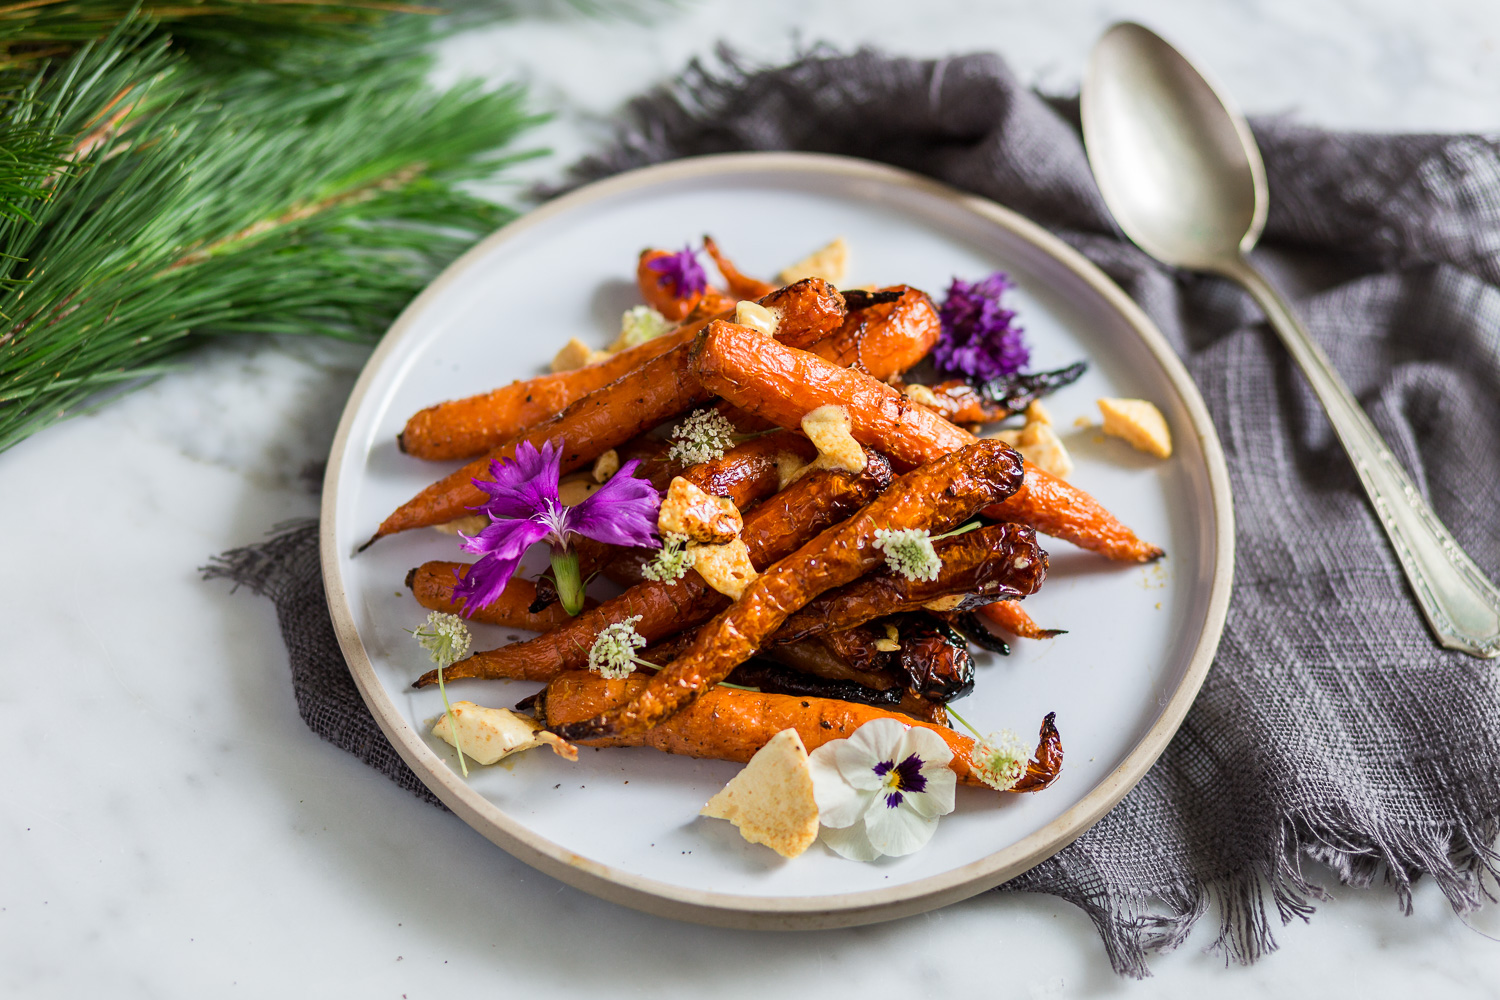 Maple glazed carrots with honey comb